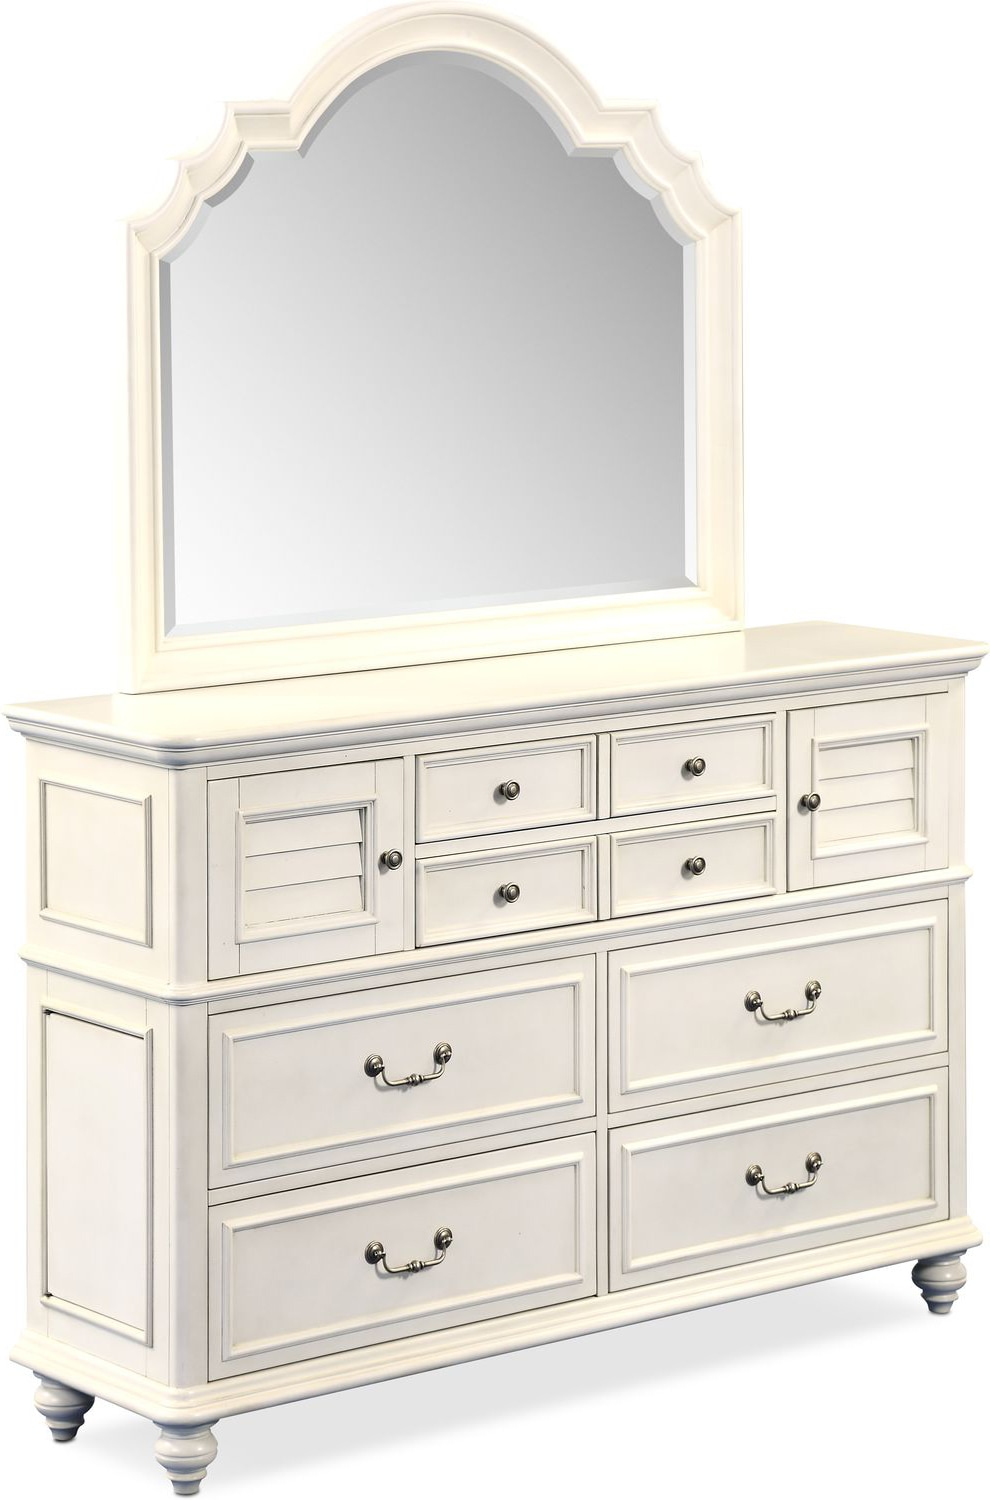 Bedroom Furniture - Charleston Dresser and Mirror